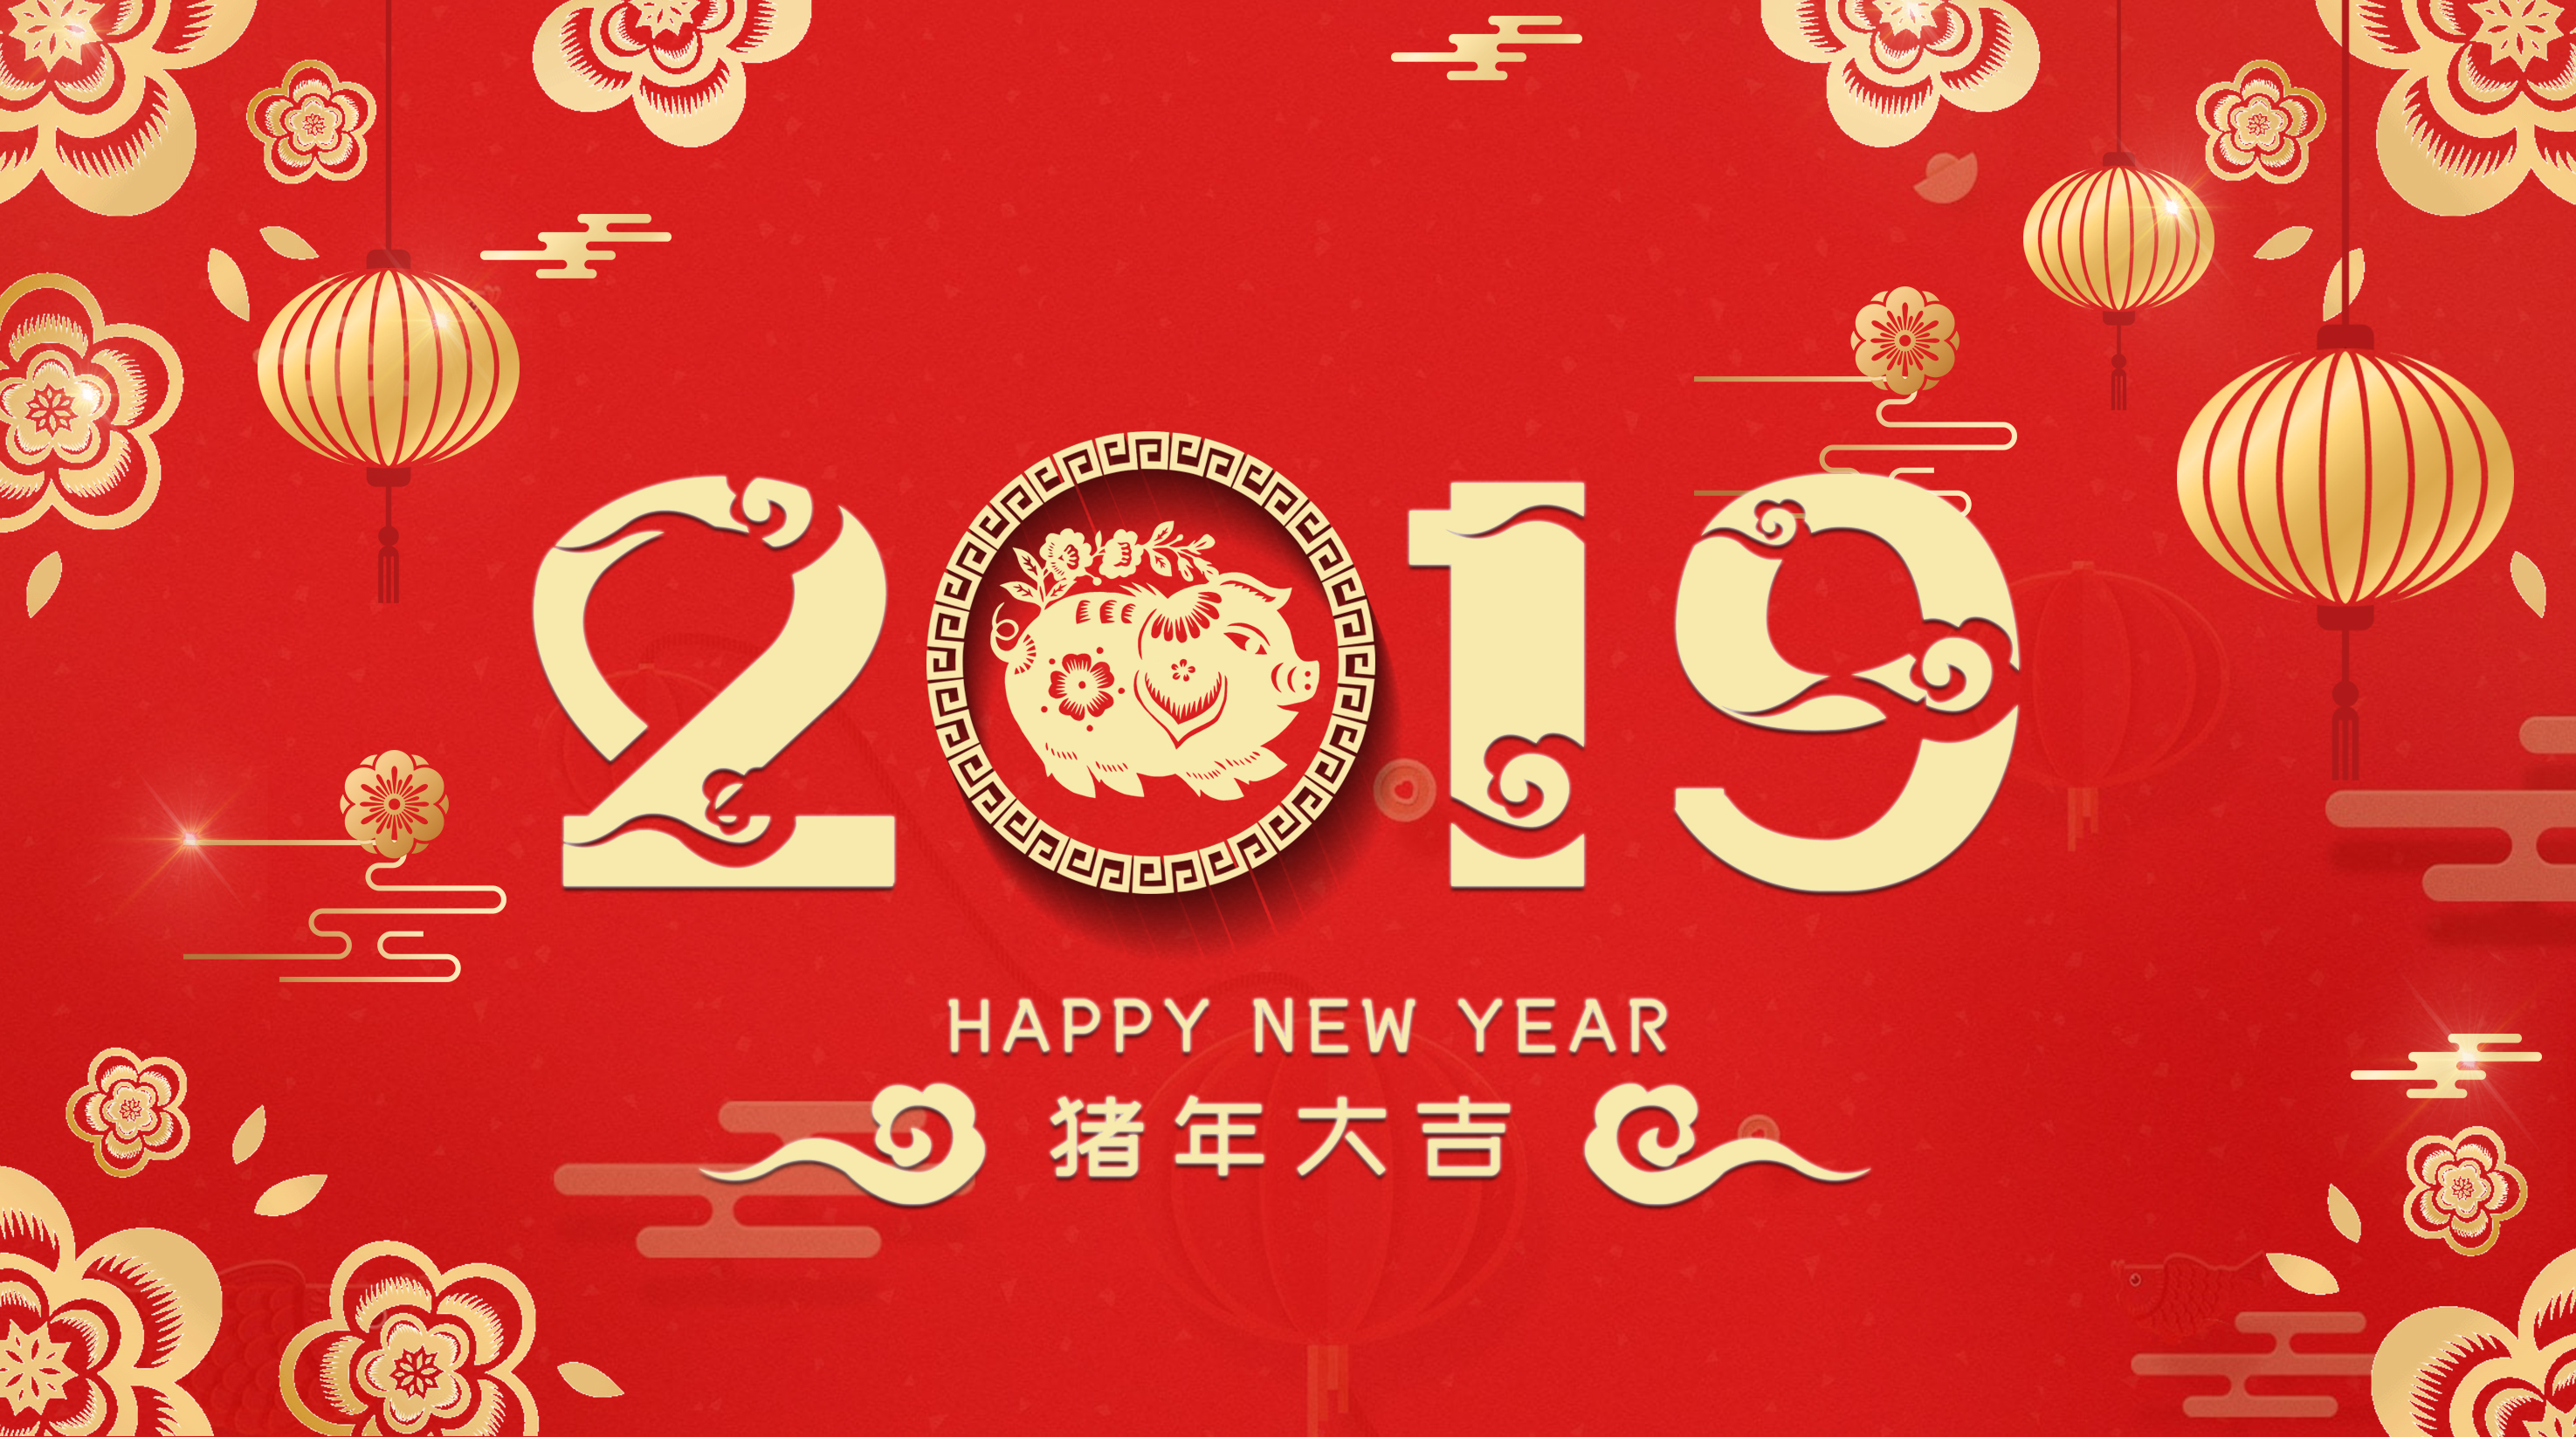 Sommy Automation Group Shares Co., Ltd wishes you a happy New Year and good luck!